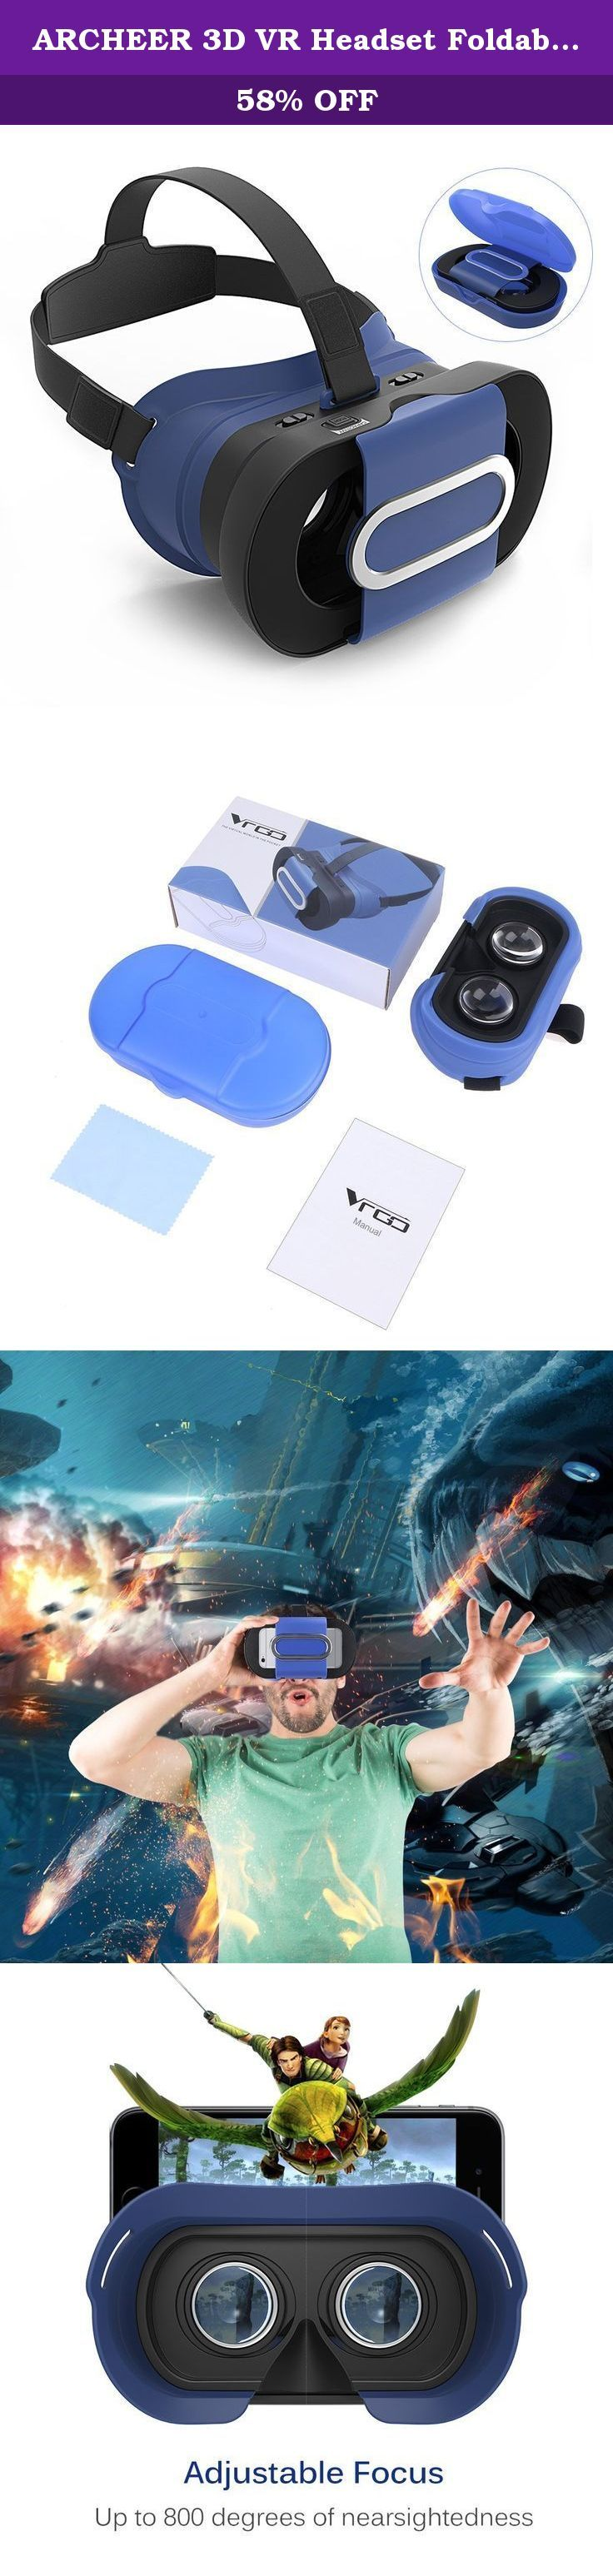 ARCHEER 3D VR Headset Foldable Virtual Reality 3D Glasses Lightweight Portable Video Movie Game VR Box with Protective Case Compatible for iPhone 7/6s Samsung and Other 4-6 Inch Smartphones Blue. Portable on the go Folded only 35mm, Archeer 3D VR headset is only 200 grams which allows you watch 3D movies anywhere, even on the go. Comfortable 3D experience 100% new brand made of high quality, durable with exquisite appearance comfortable to wear and compatible with iOS and Android. Focal...